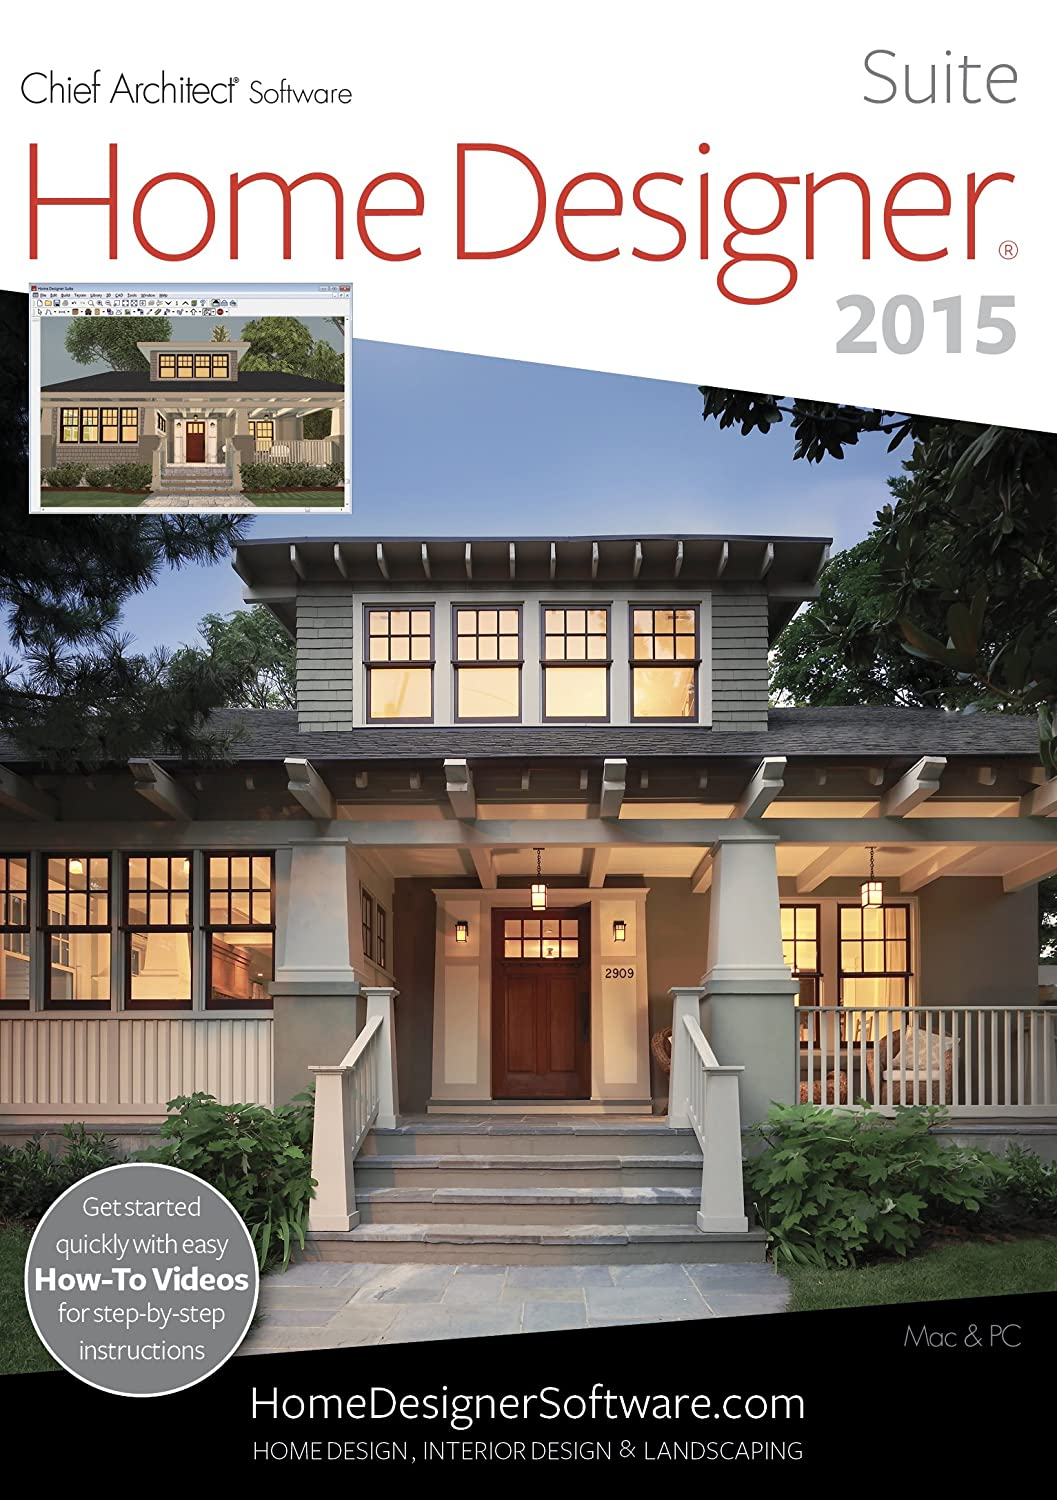 Amazon.com: Home Designer Suite 2015 [Download]: Software